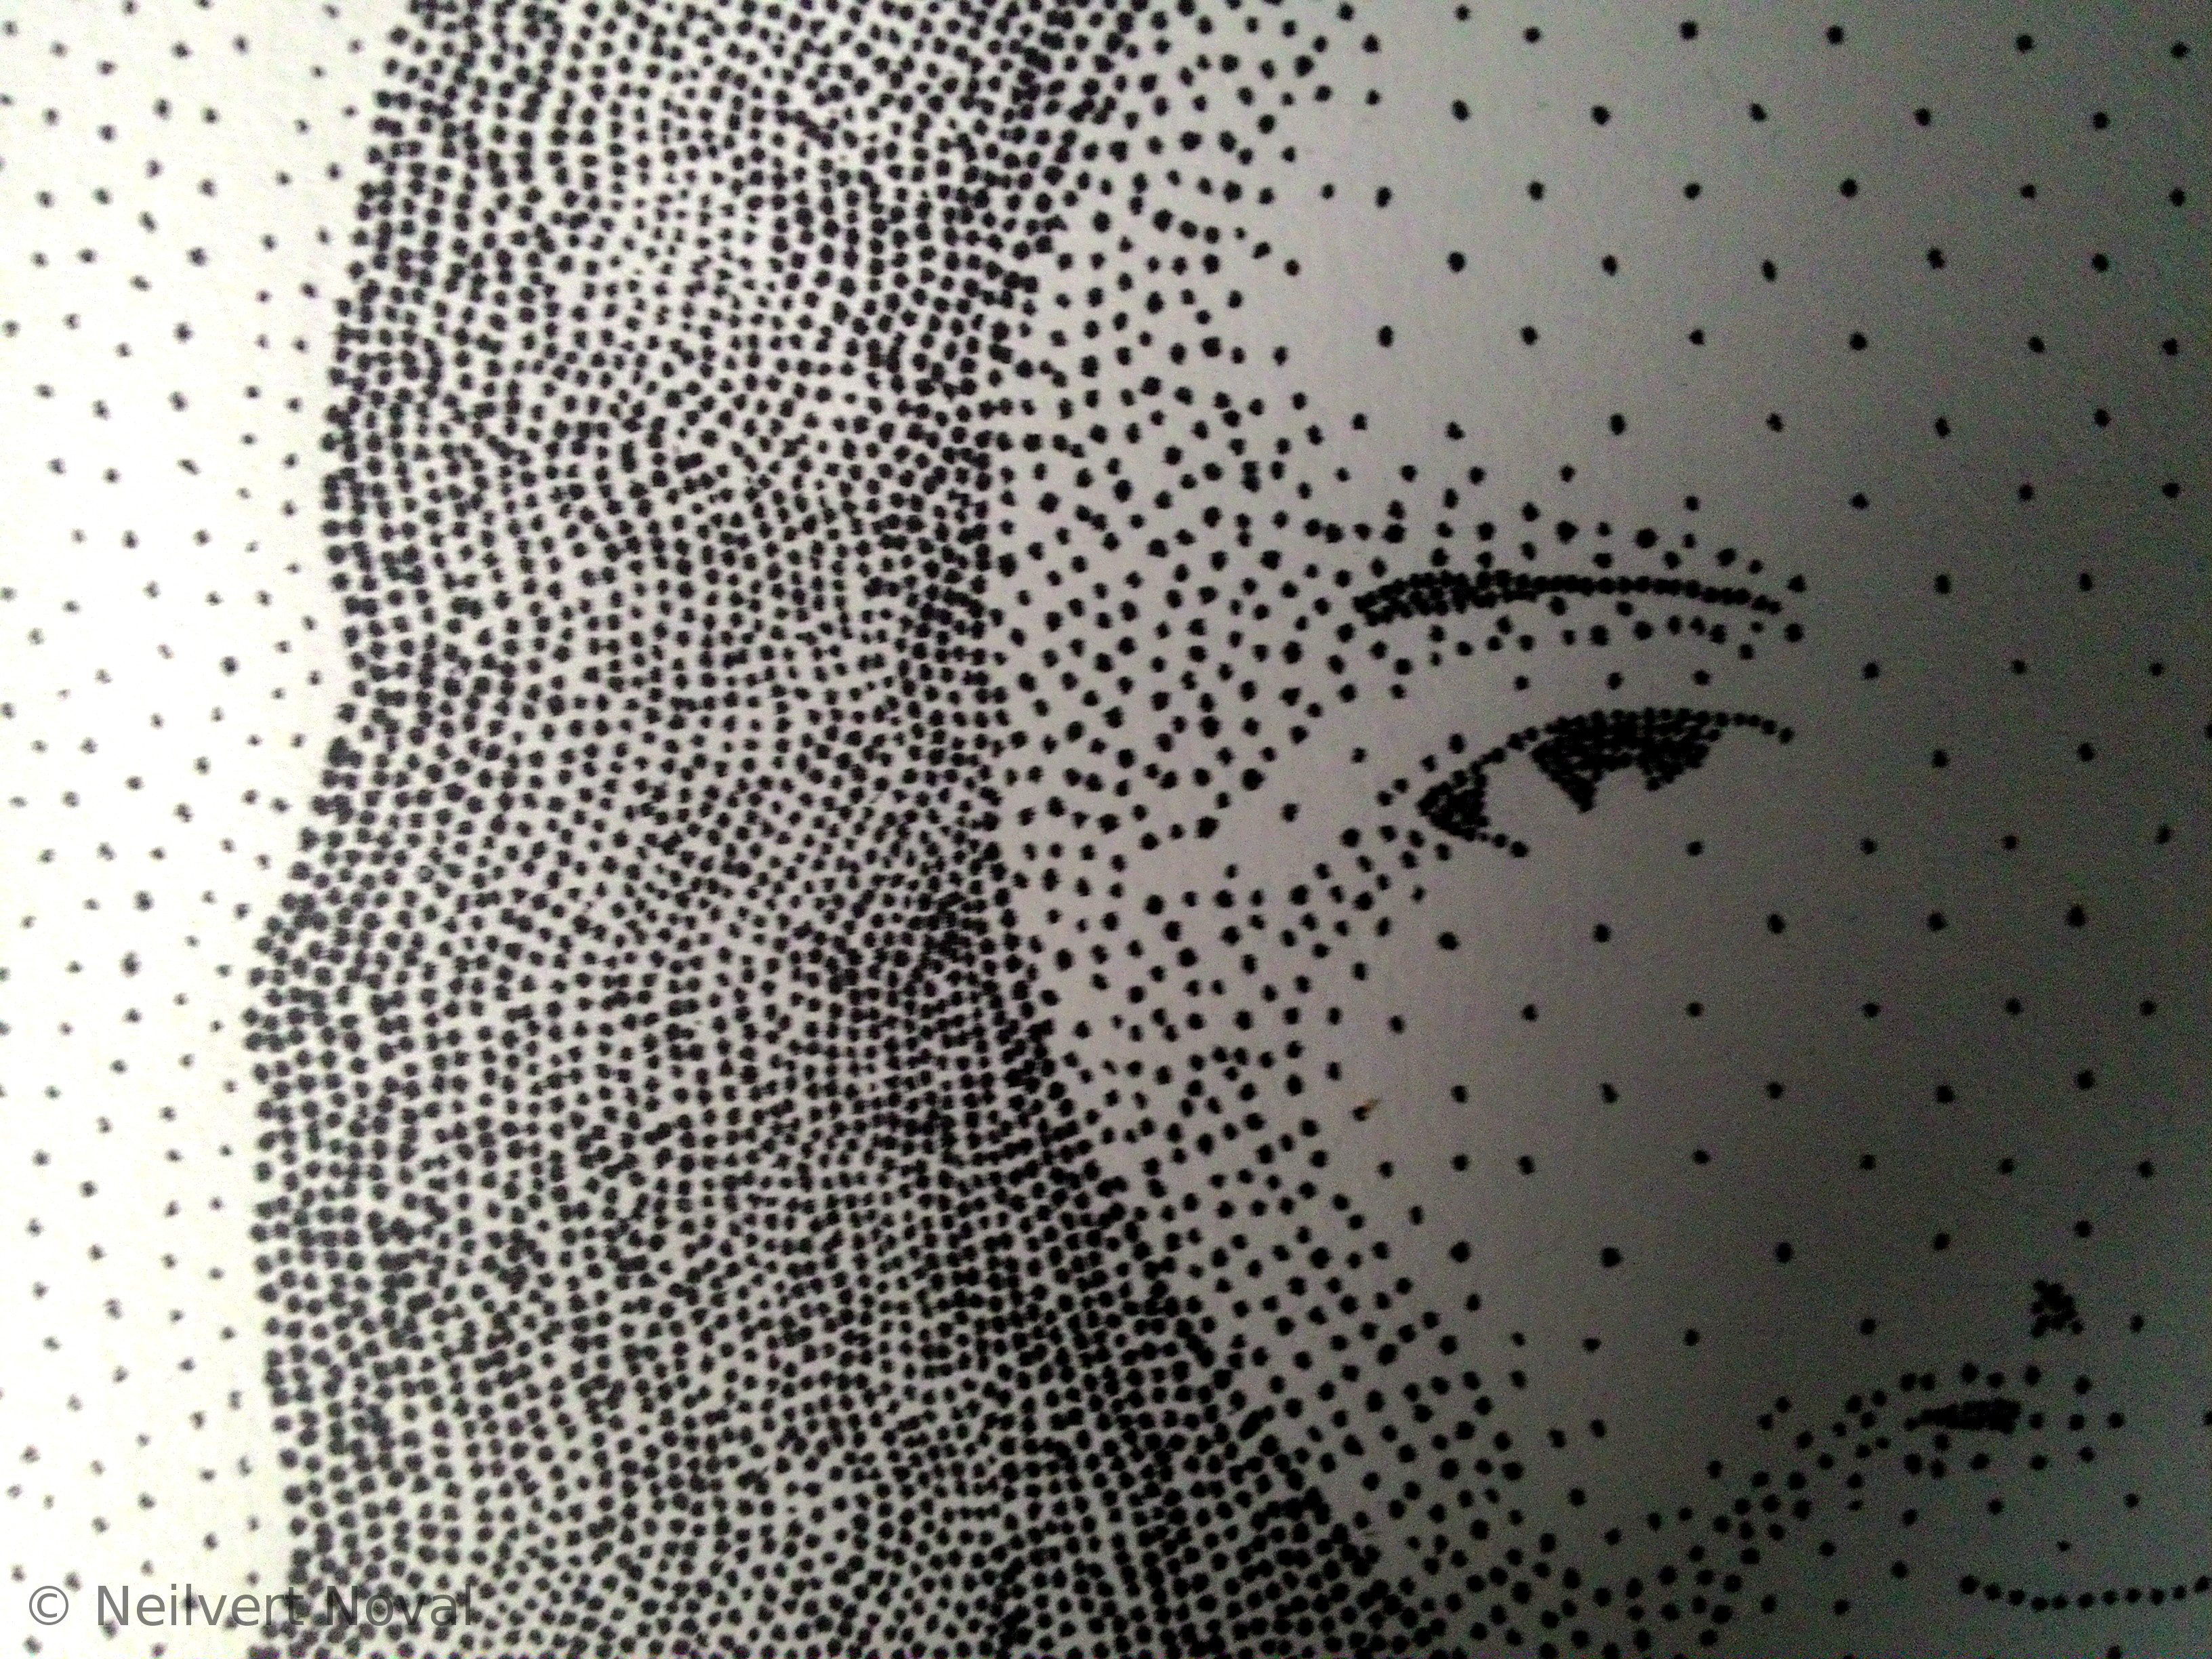 Several Dots Formed Into Jesus Christ Portrait 2